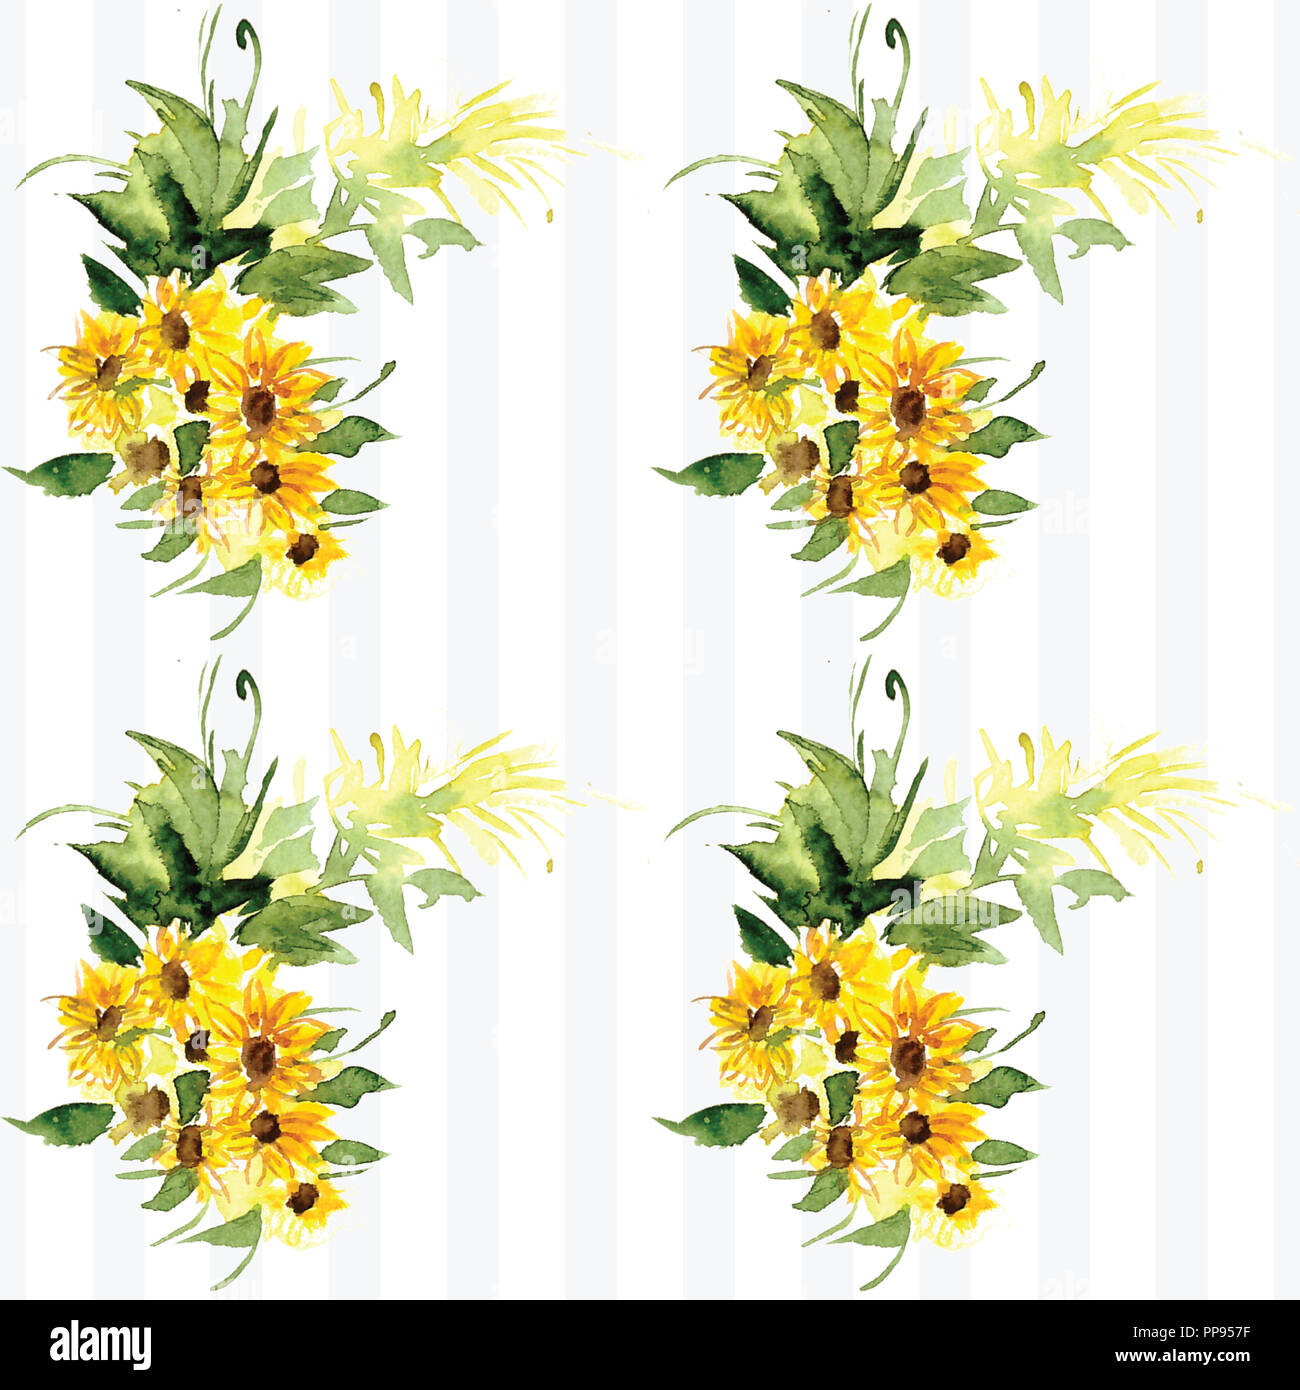 The Pattern Of Blooming Yellow Flowers Sunflower Painted In Watercolor Illustration Of Decorative Floral Design For Wedding Invitations And Greeting Stock Photo Alamy